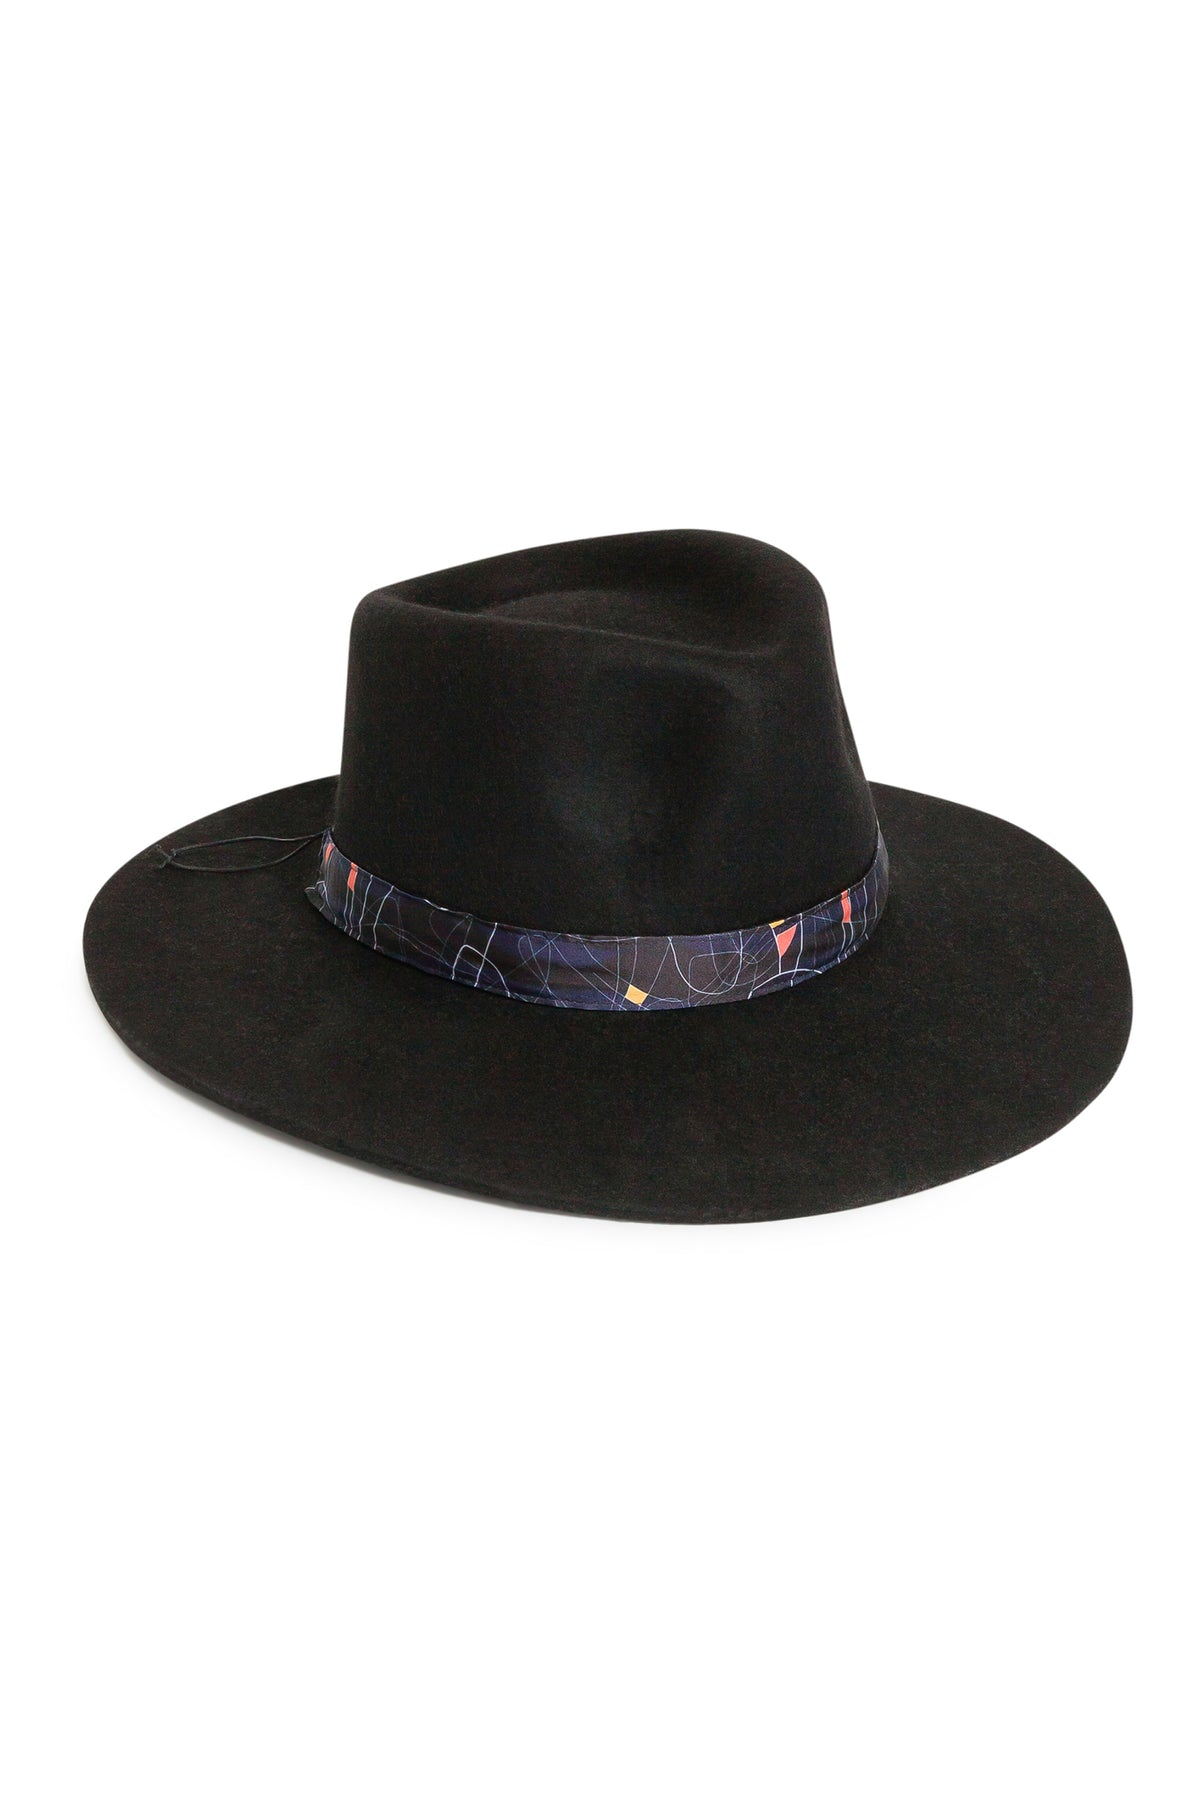 Heimstone x Fringe & Frange hat in reflections print